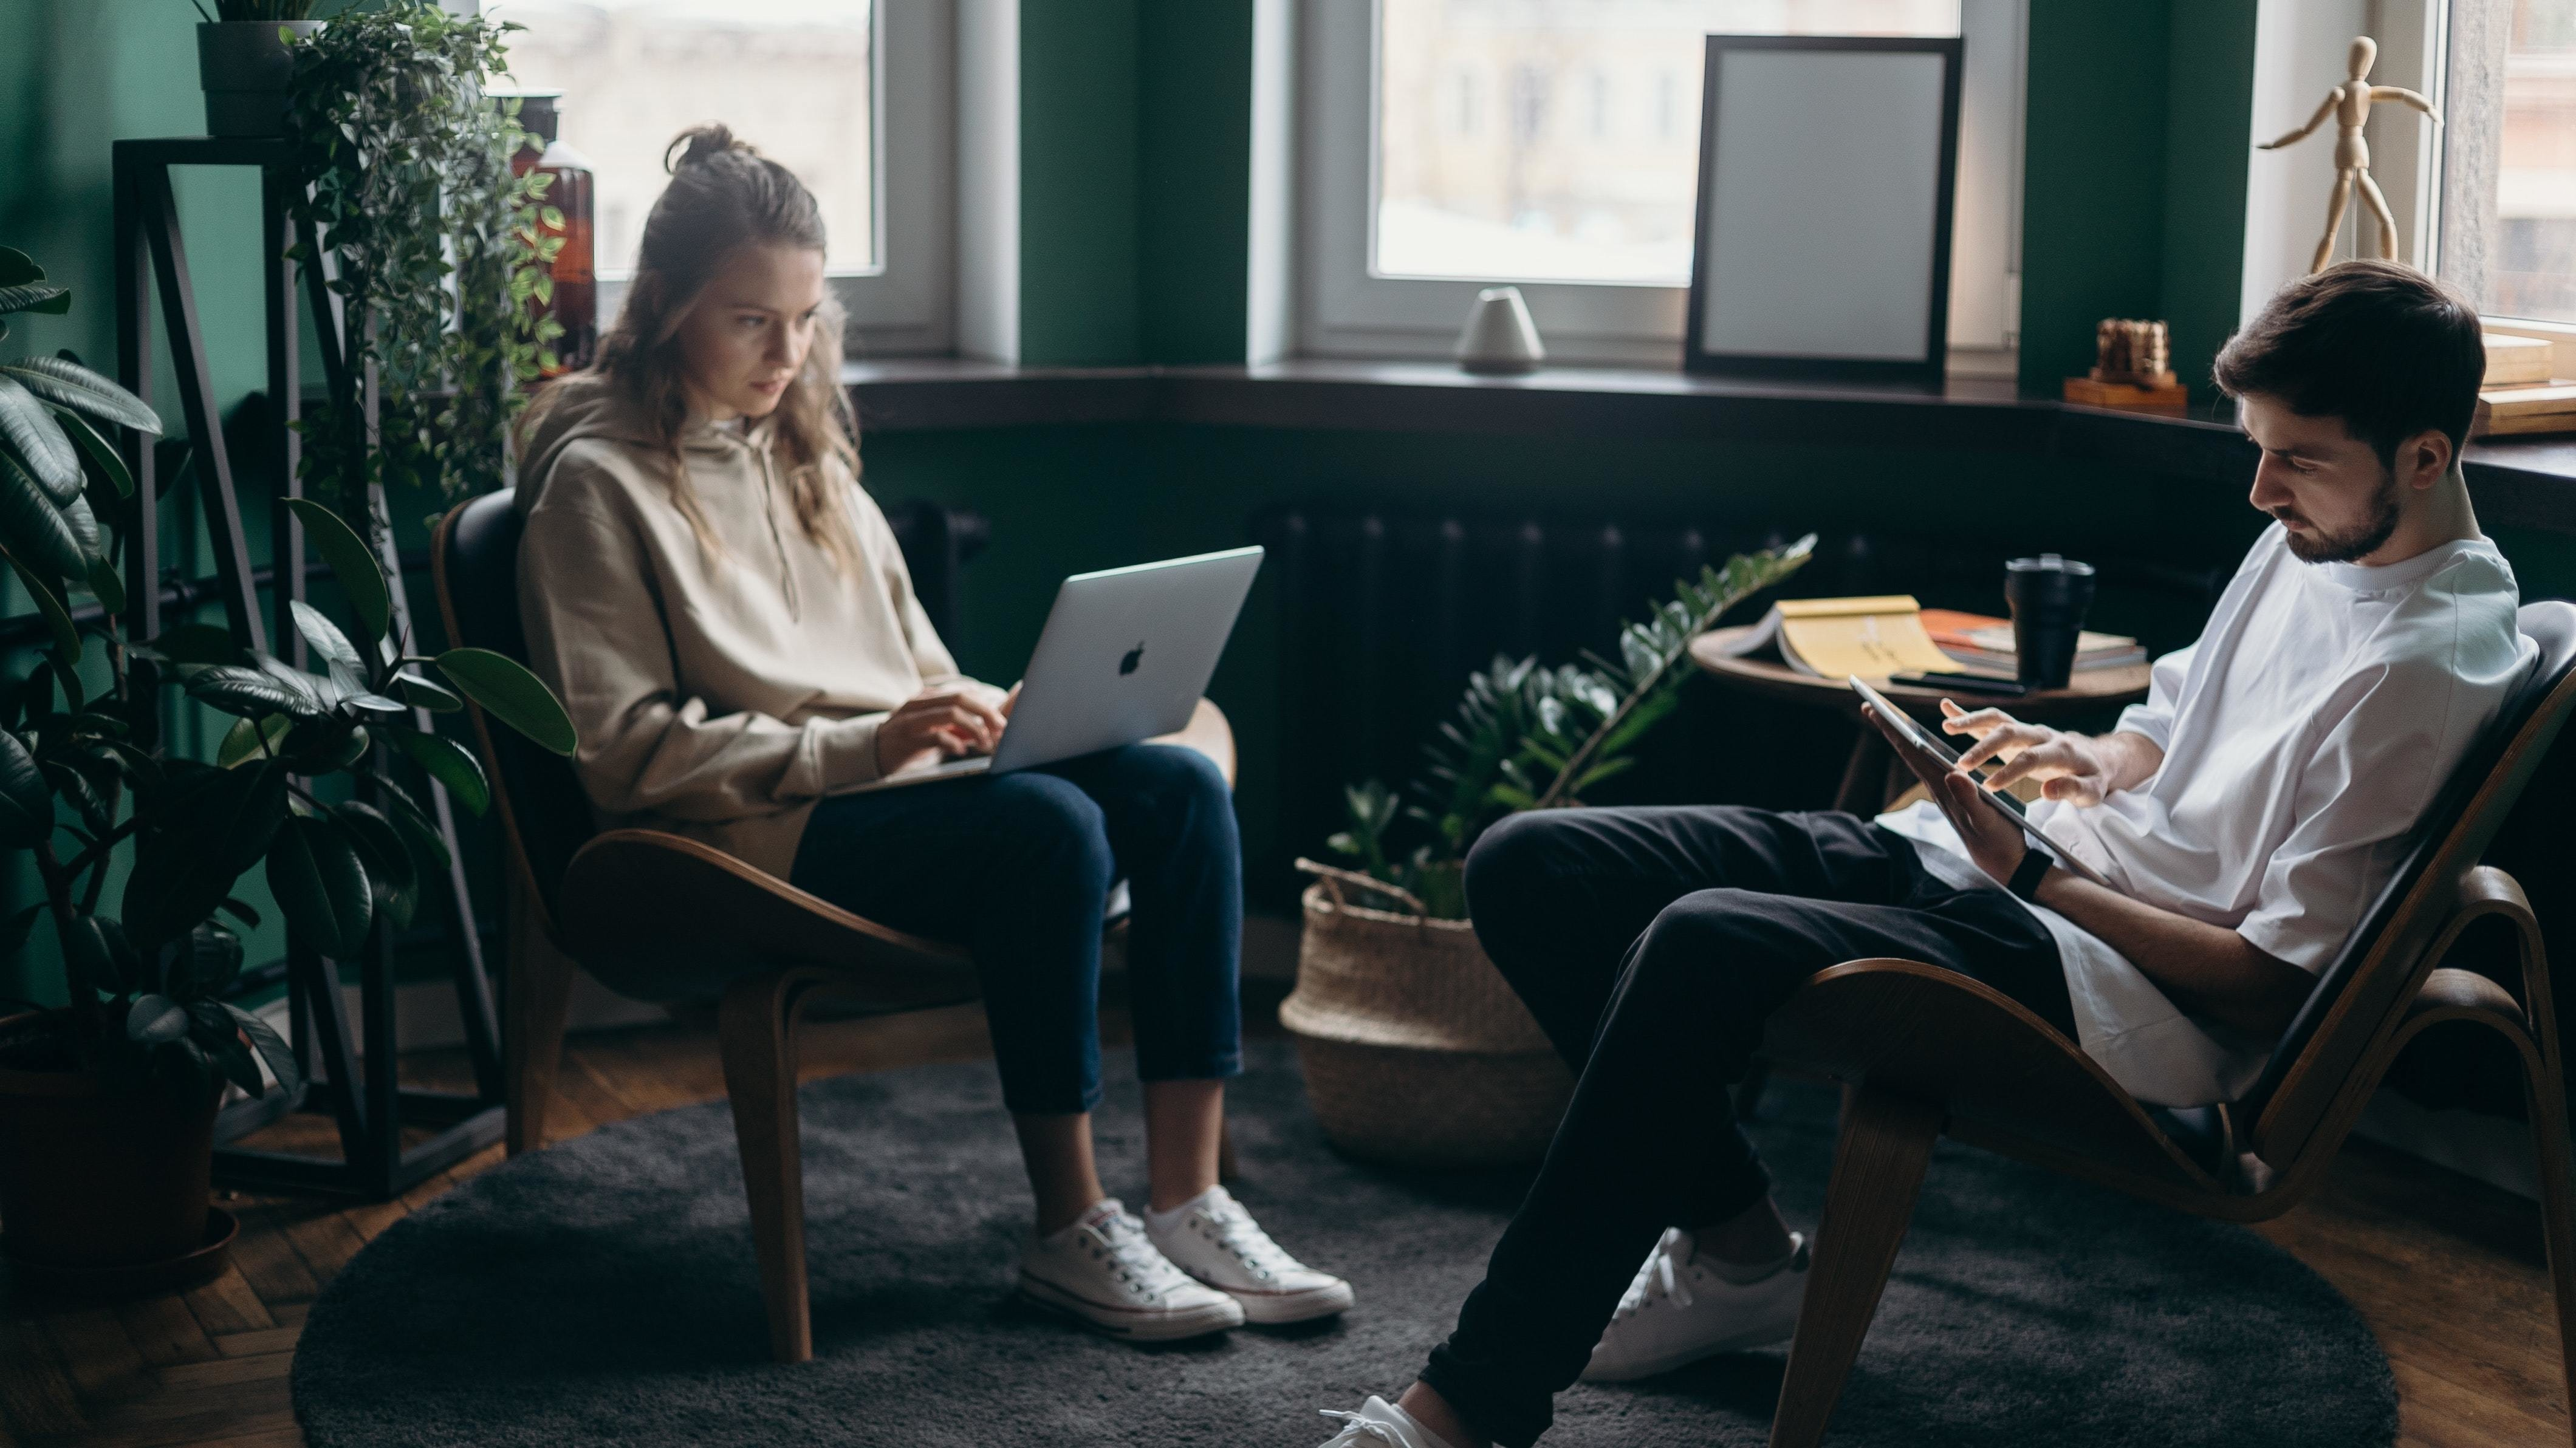 Two young people working from home on digital devices.